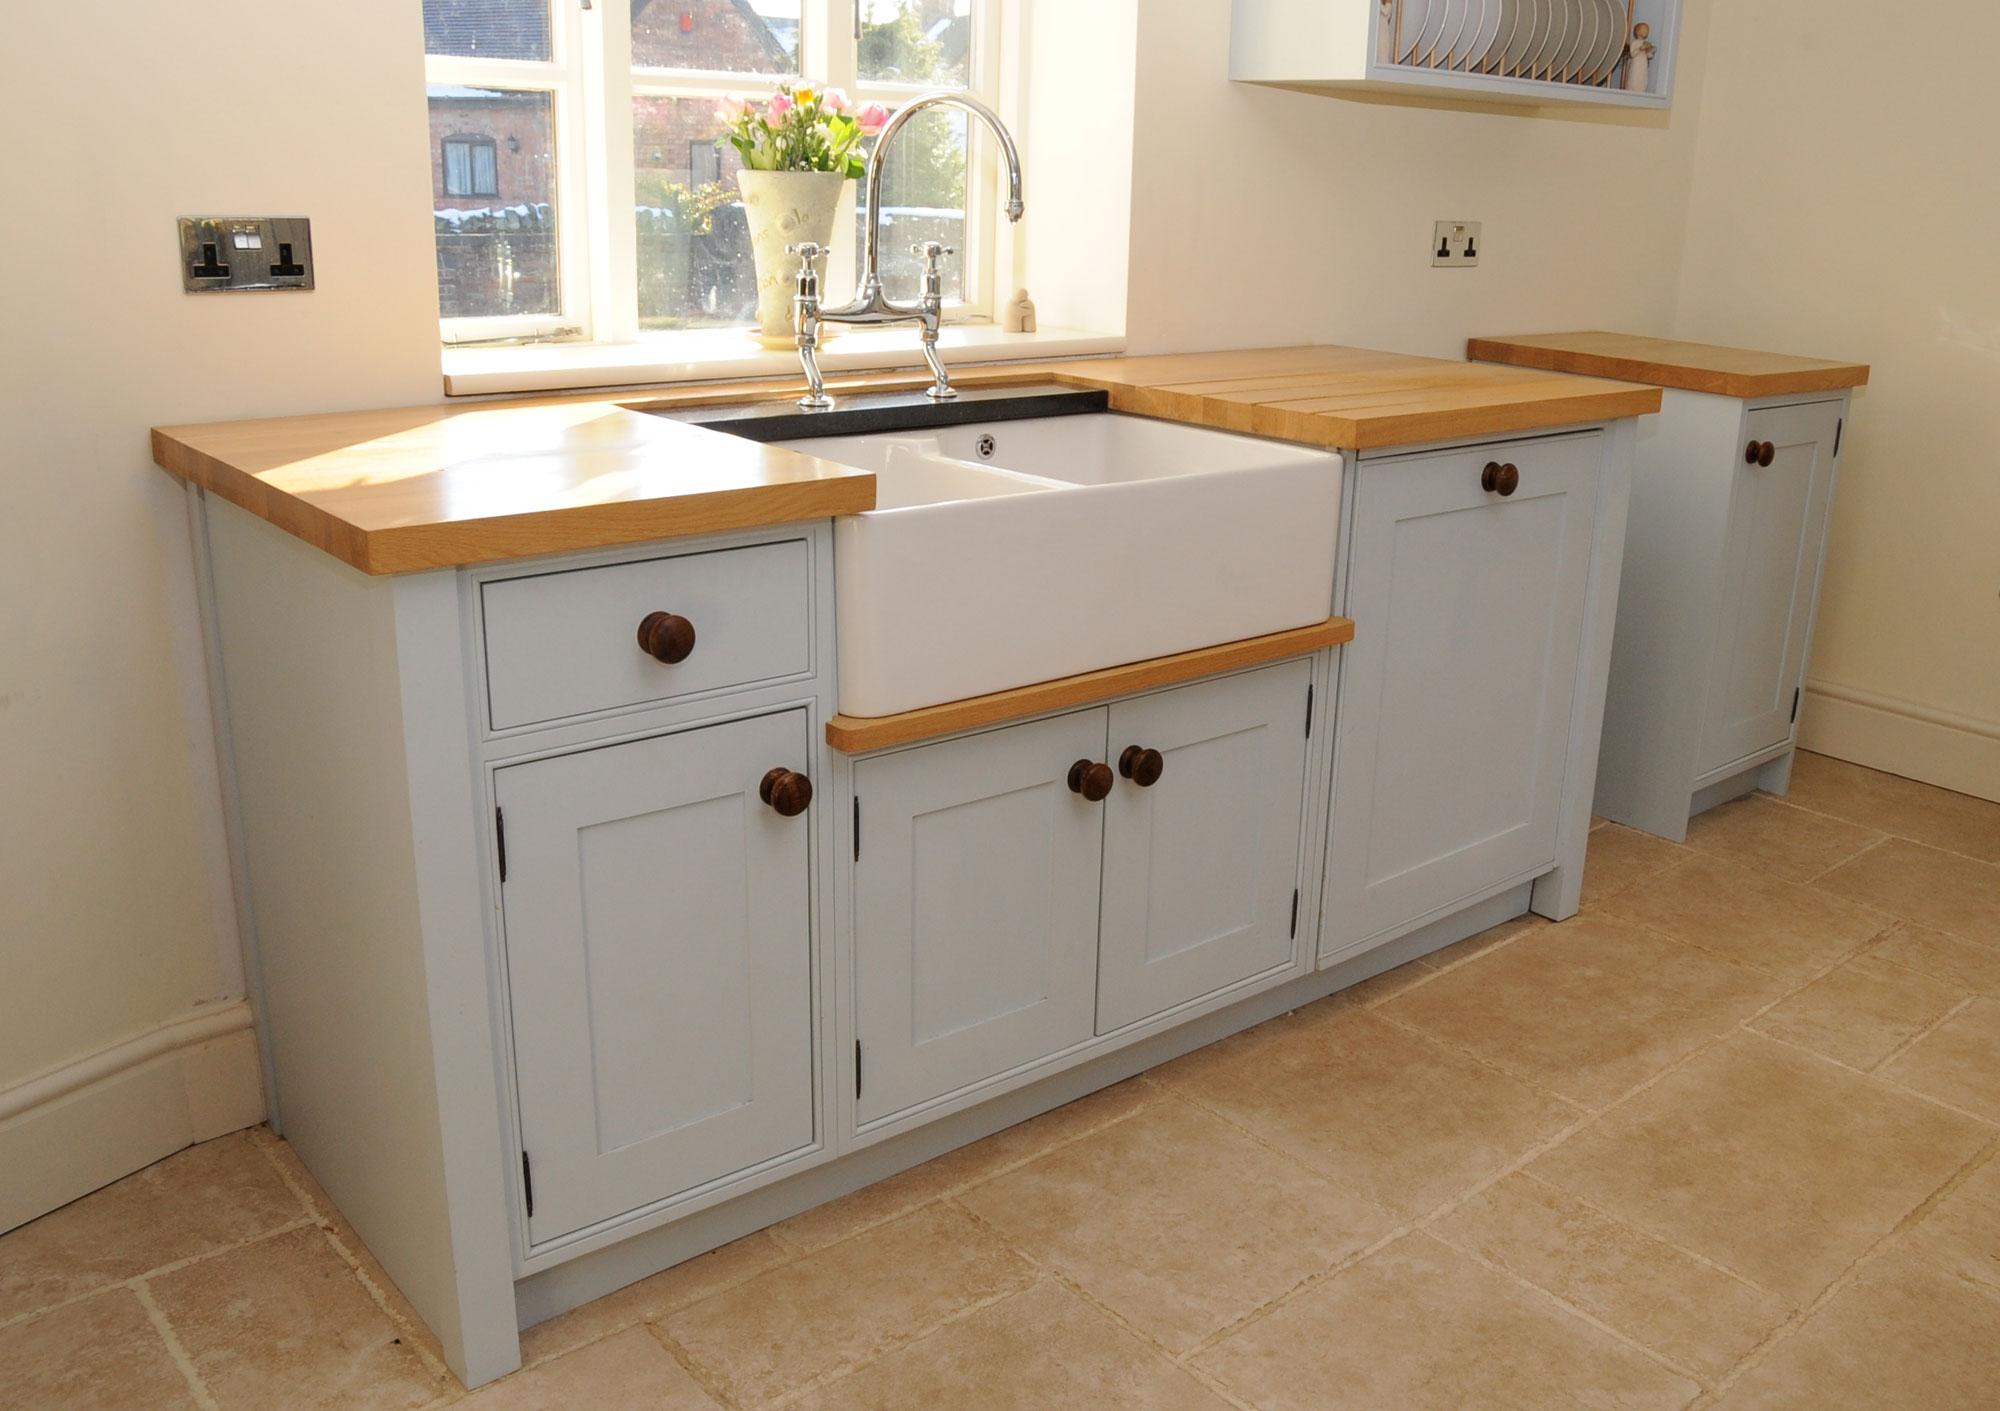 Kitchen Sinks With Cupboards Home Decor And Interior Design Throughout Free Cupboards (#11 of 12)